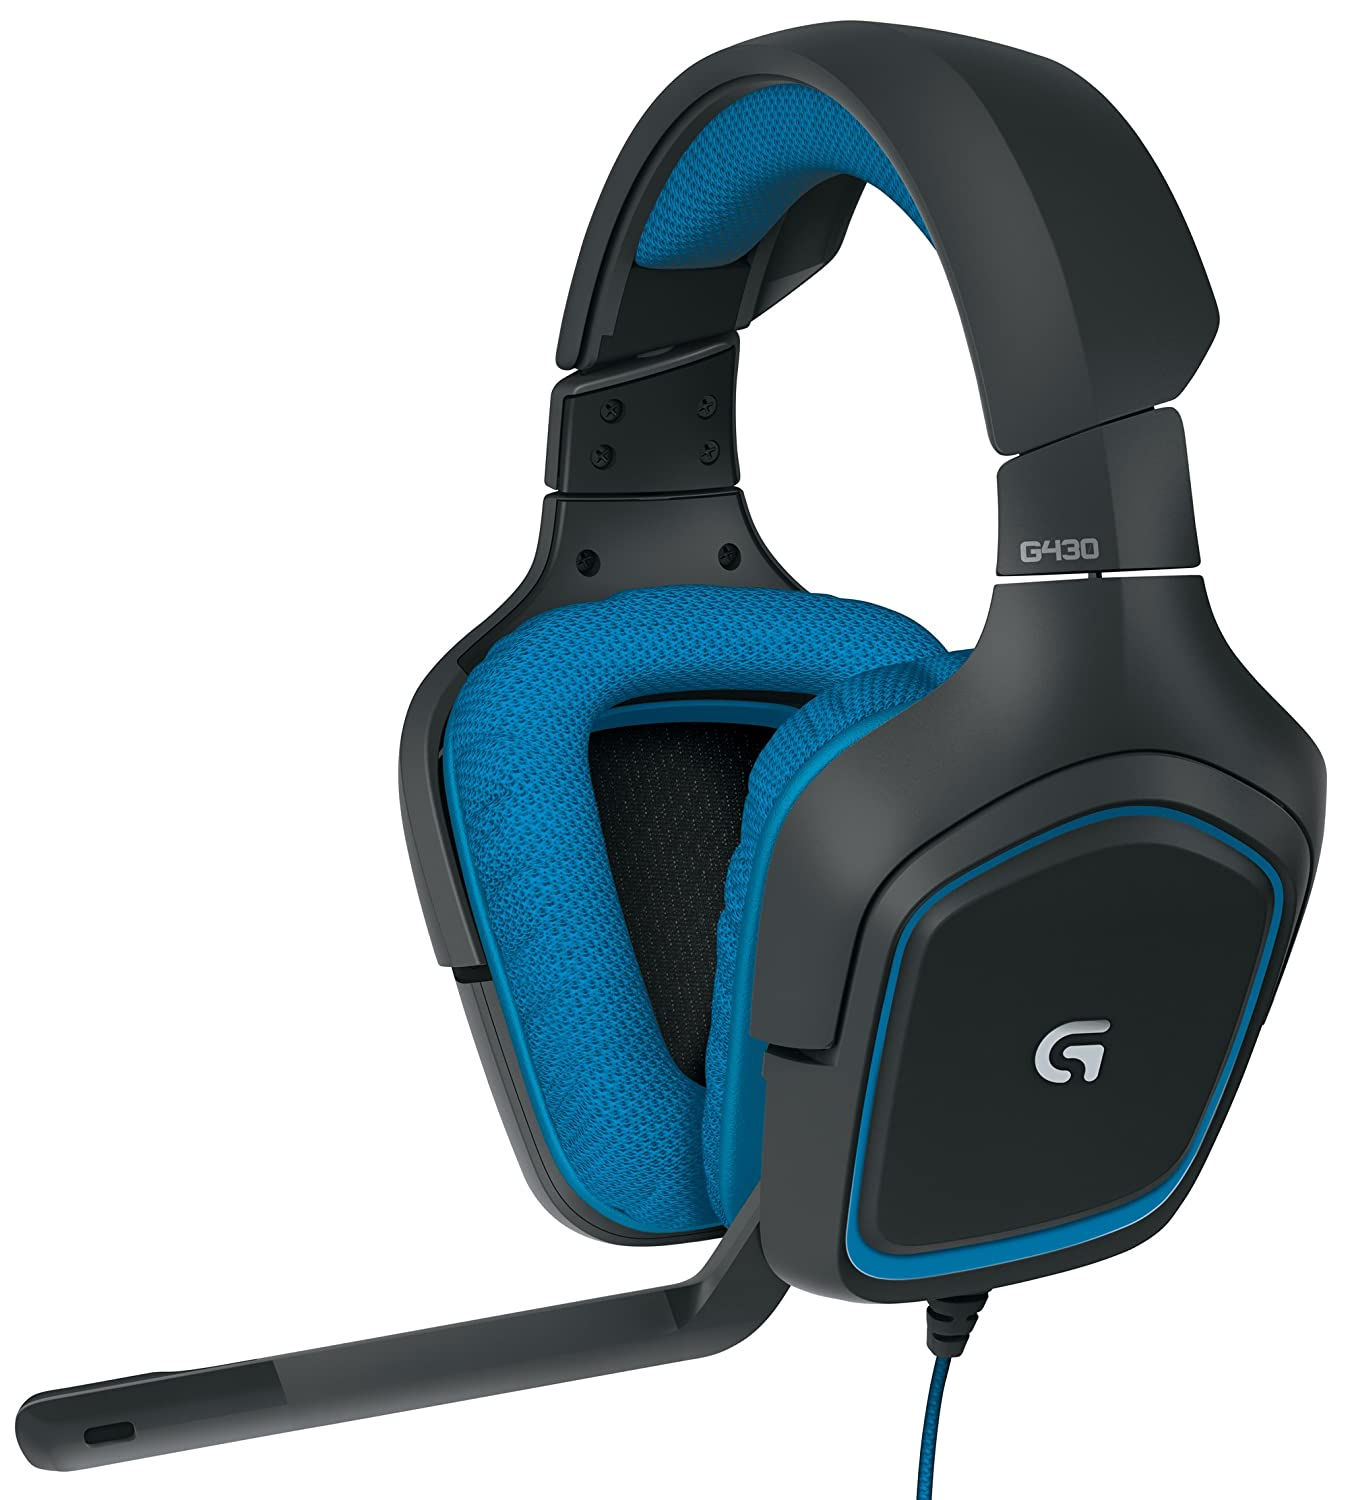 Logitech G430 Gaming Headsets are very comfortable